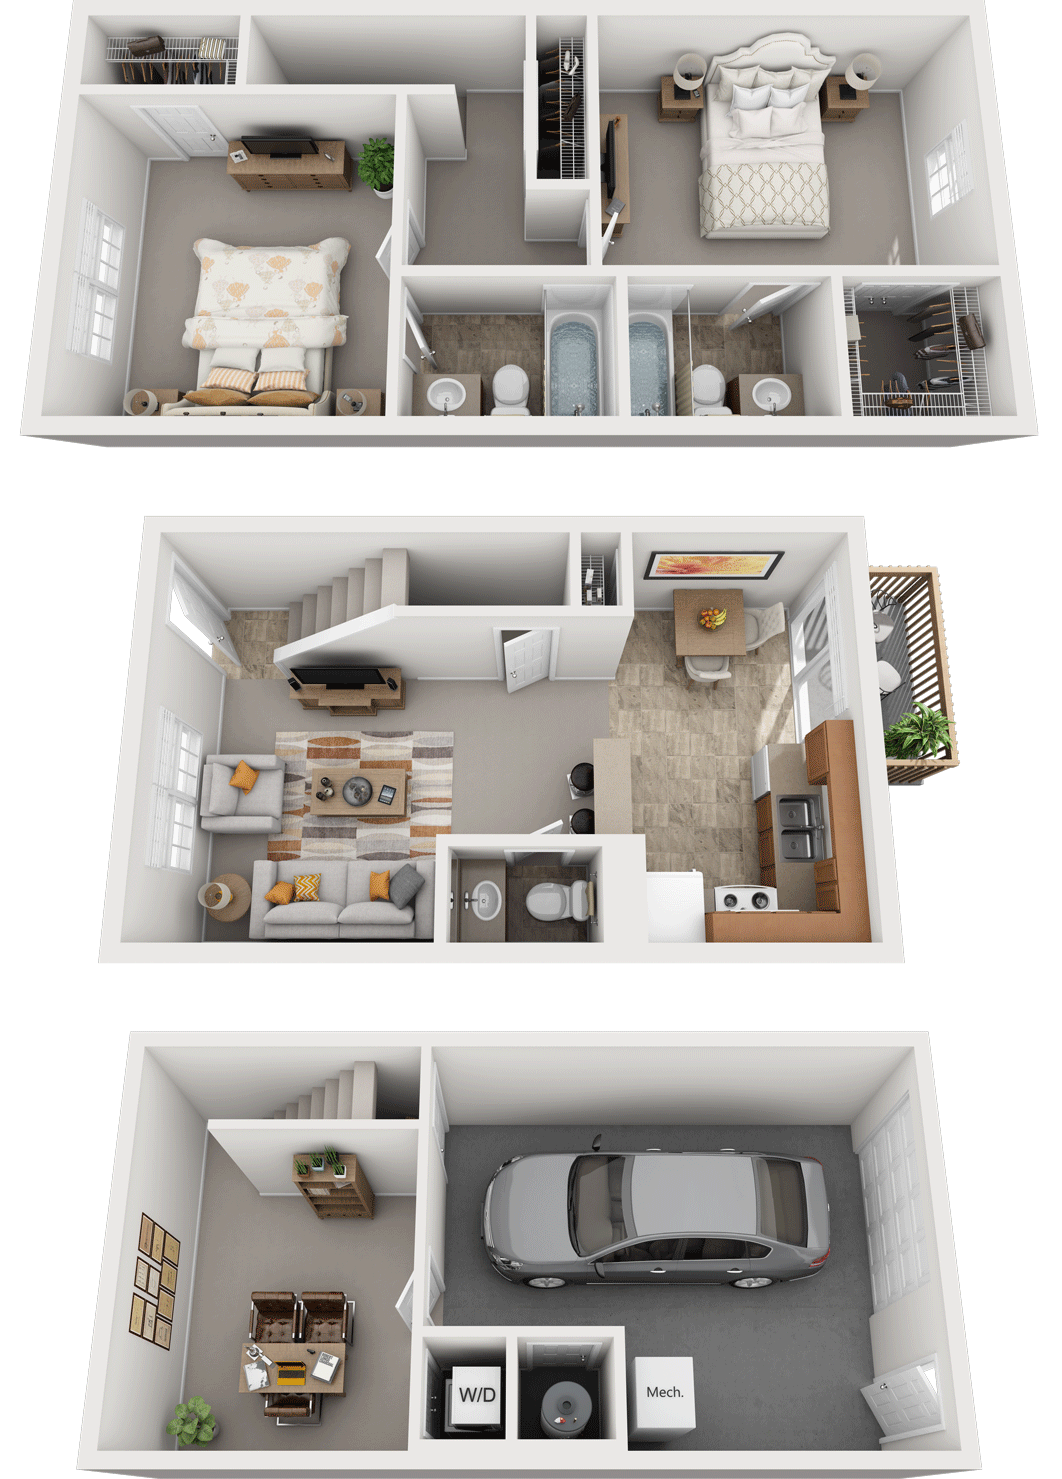 Adams Village – The Quarry Phase II & III Floor Plan